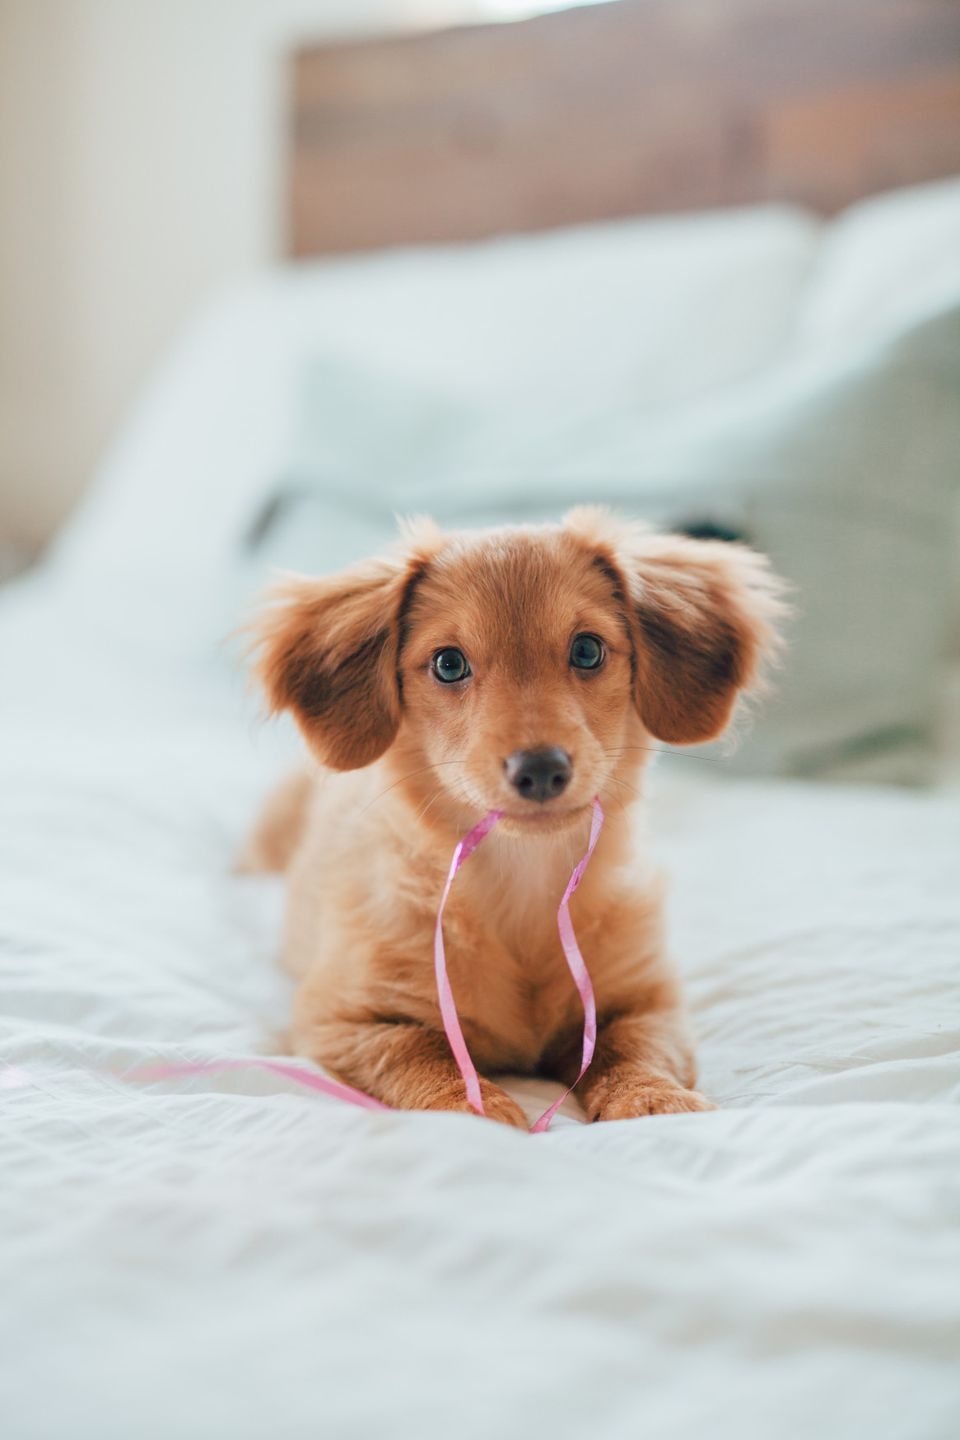 puppy chewing on string